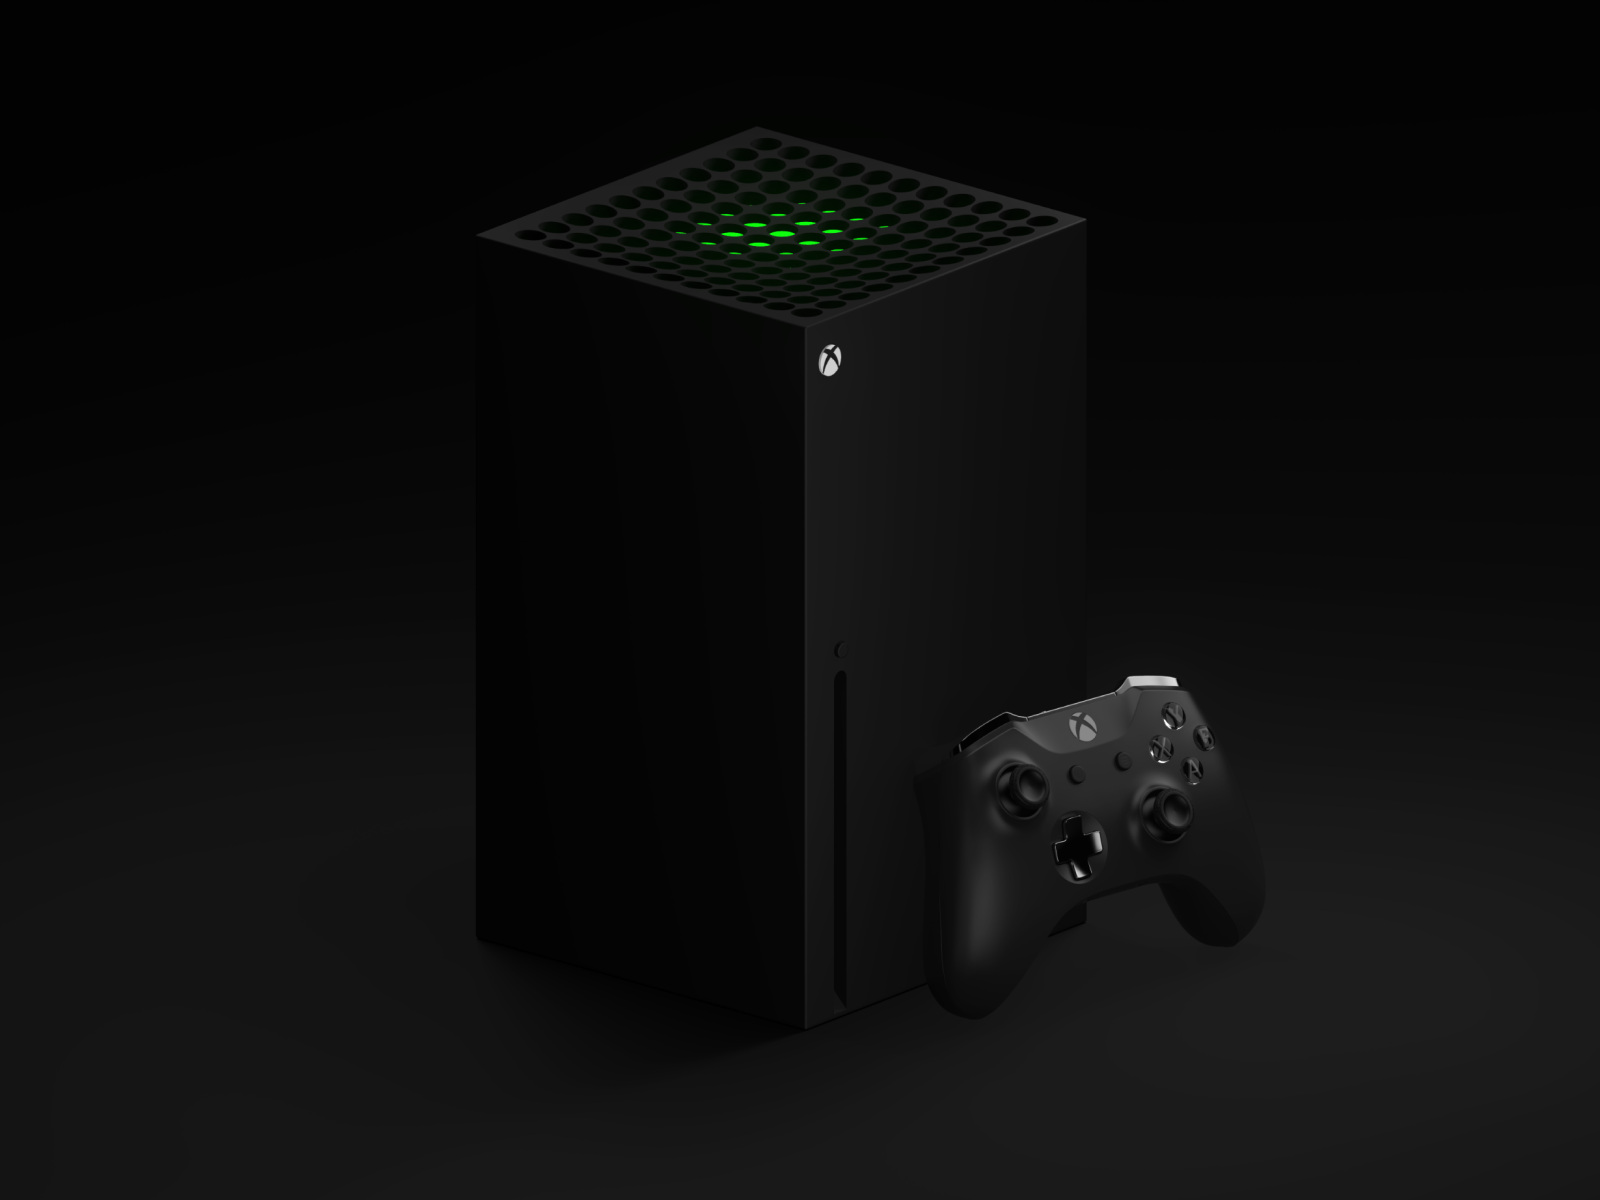 Xbox Series X By Michal Sambora For Itmagination On Dribbble